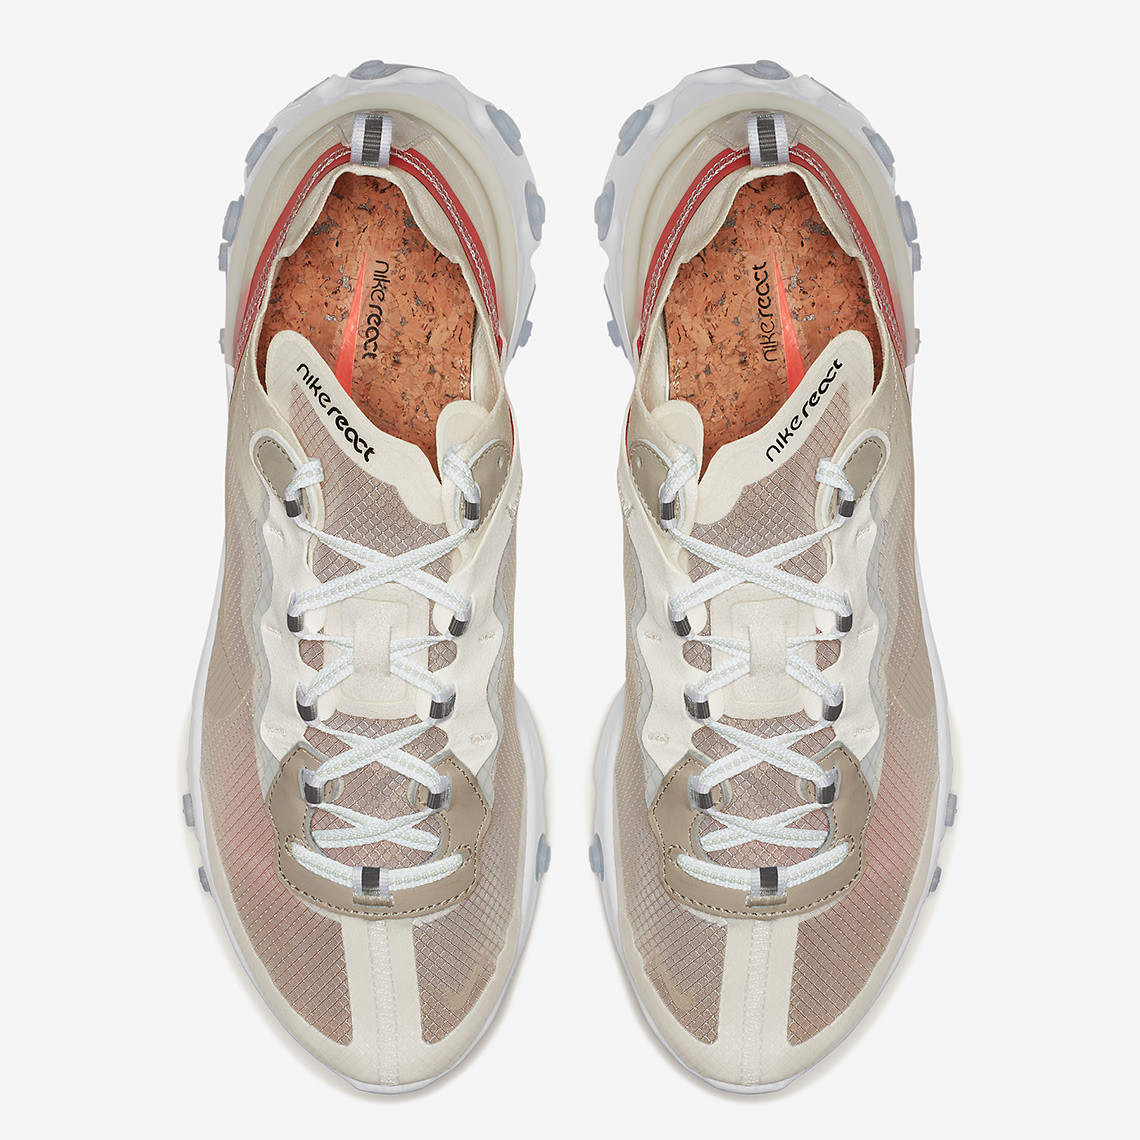 AQ1090 100 Nike React Element 87 Sail 3